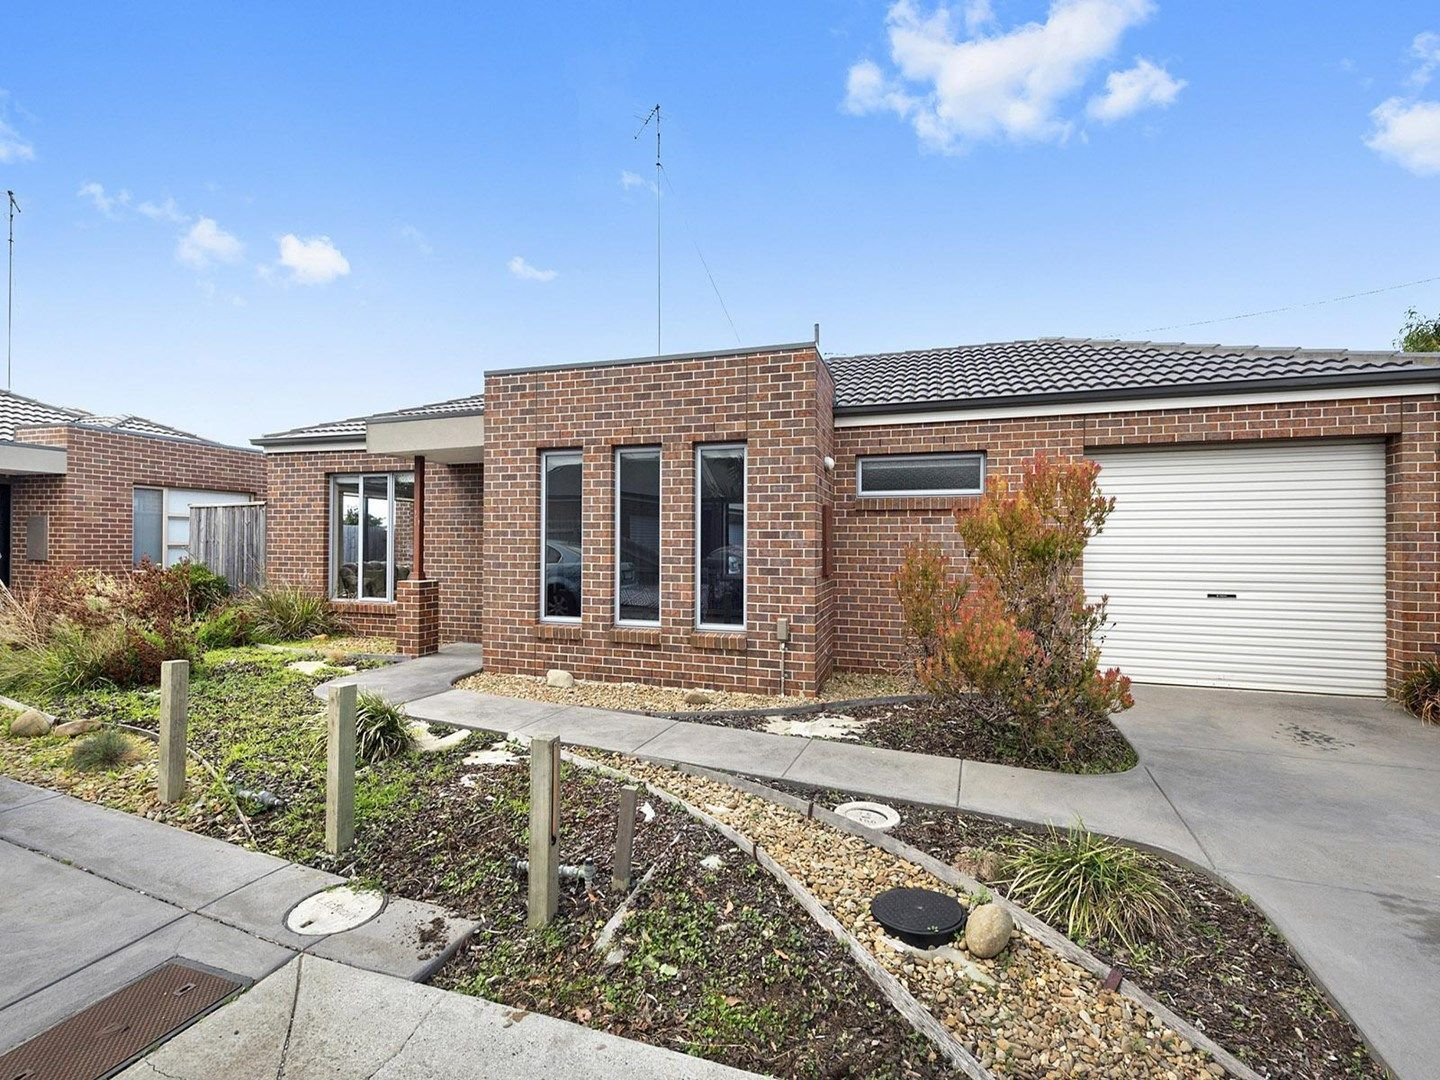 2/6 Nikola Court, Marshall VIC 3216, Image 0